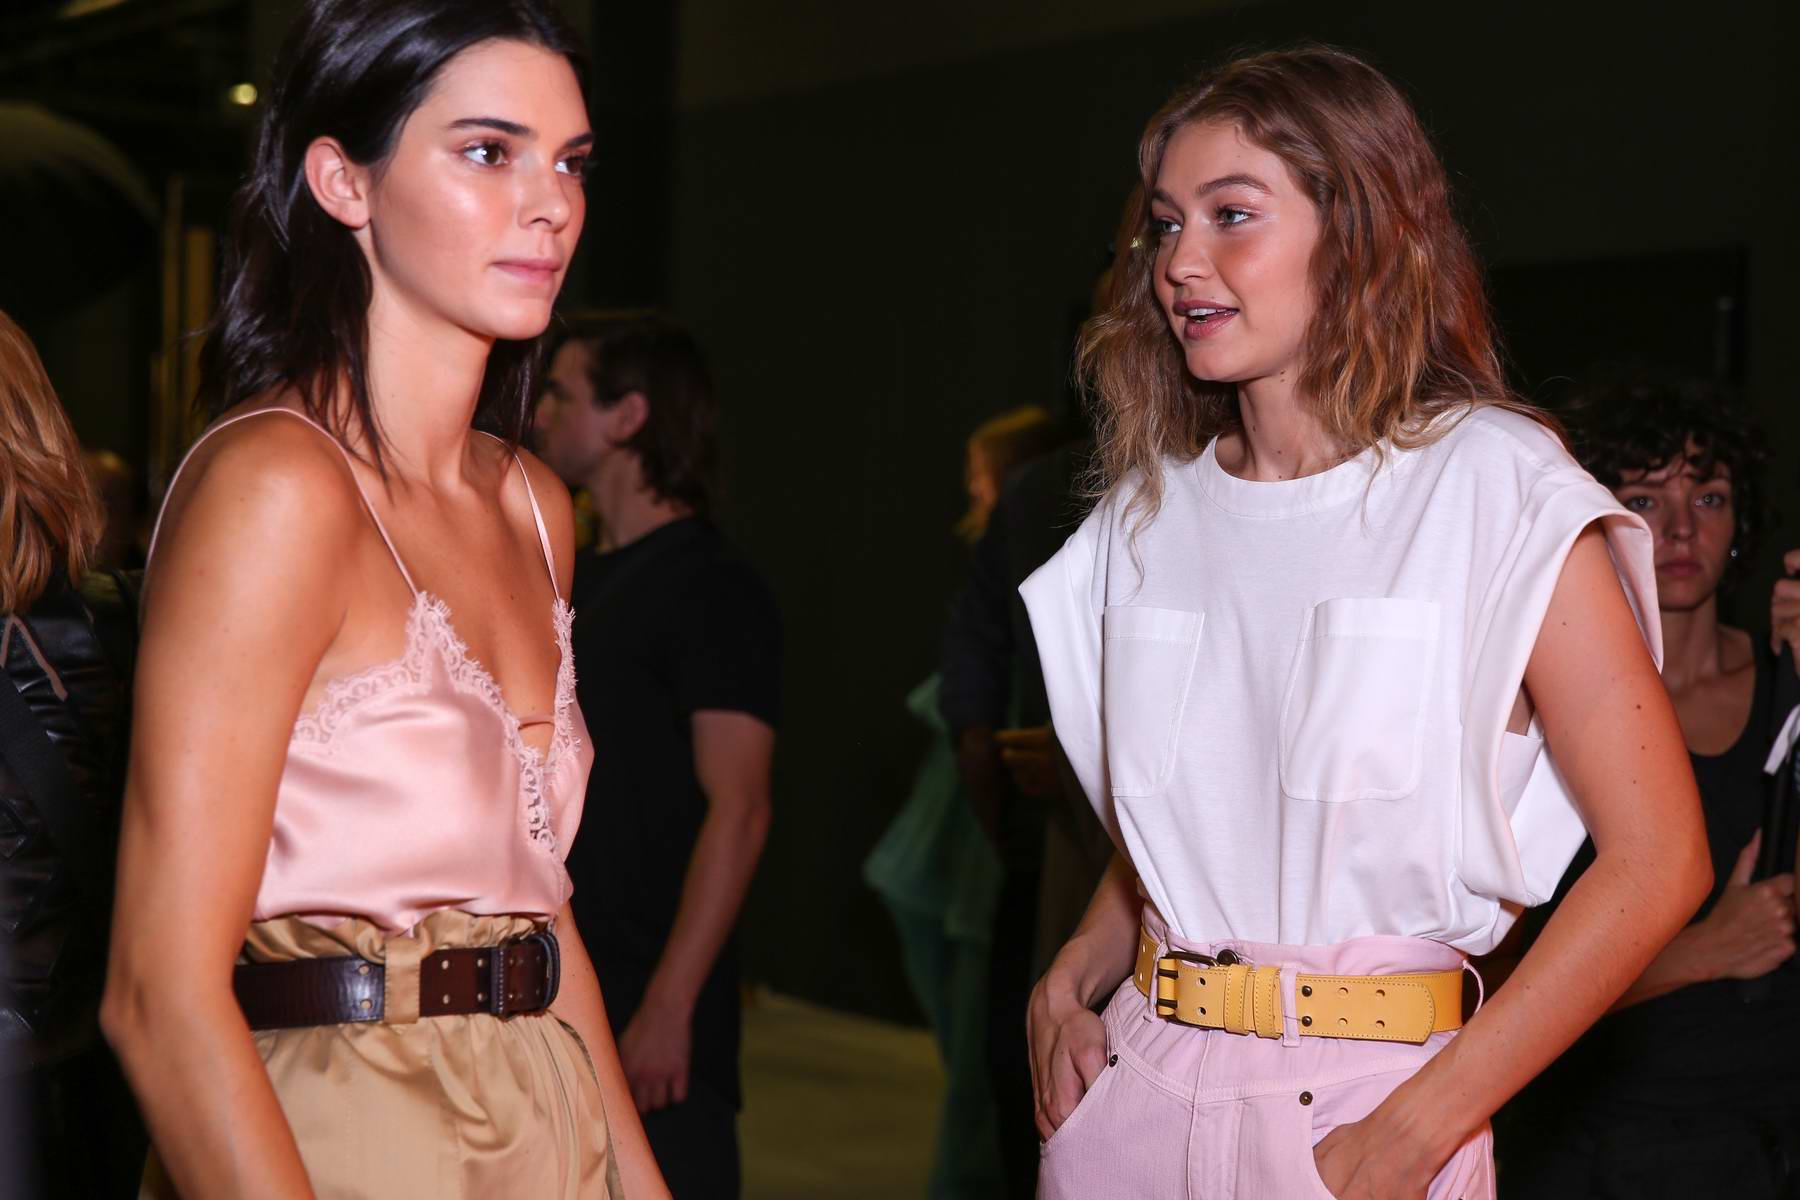 Kendall Jenner and Gigi Hadid at backstage of Alberta Ferretti Show, Spring/Summer 2019 during Milan Fashion Week in Milan, Italy